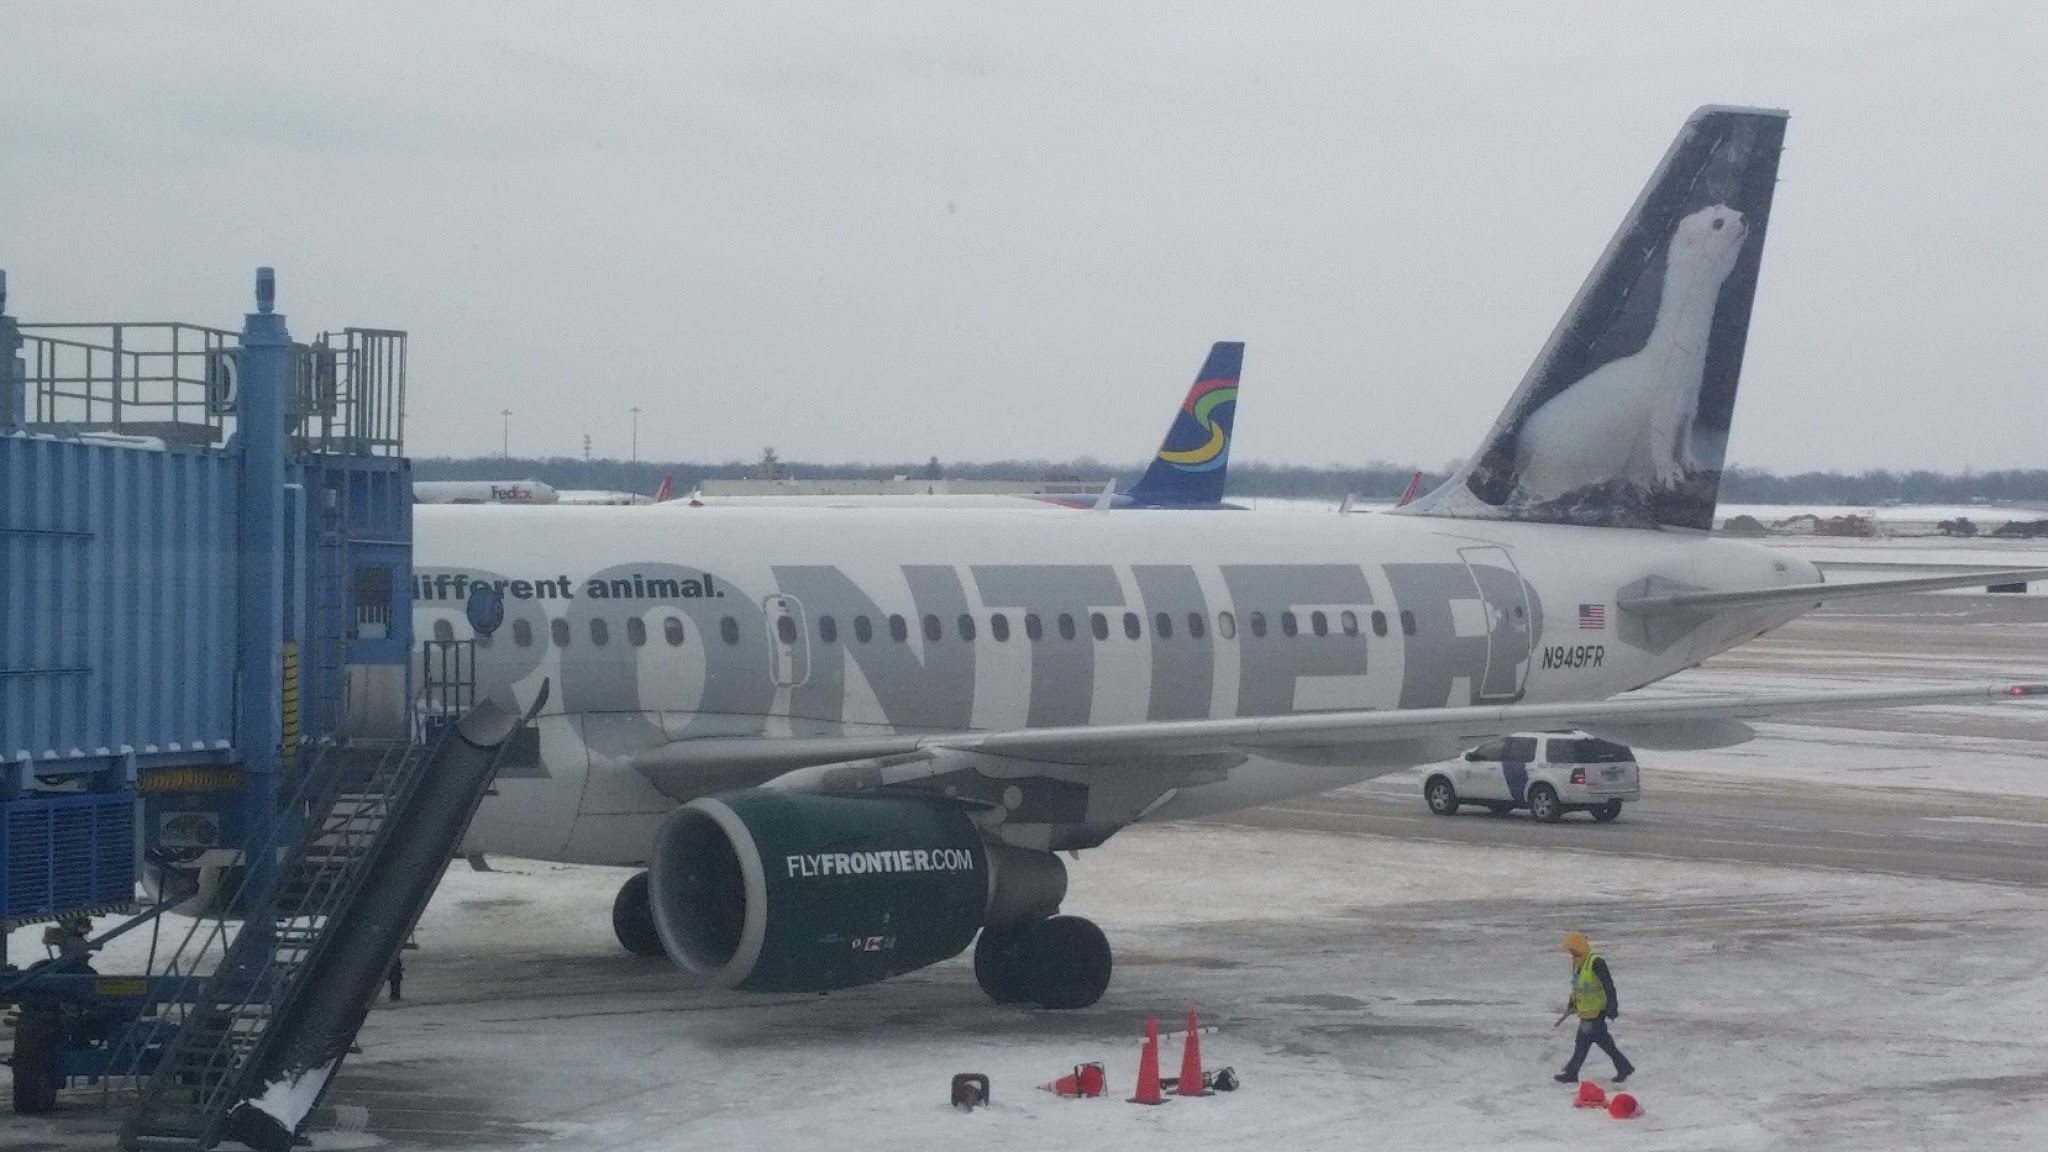 Review: Flying Frontier Airlines Made Economic Sense